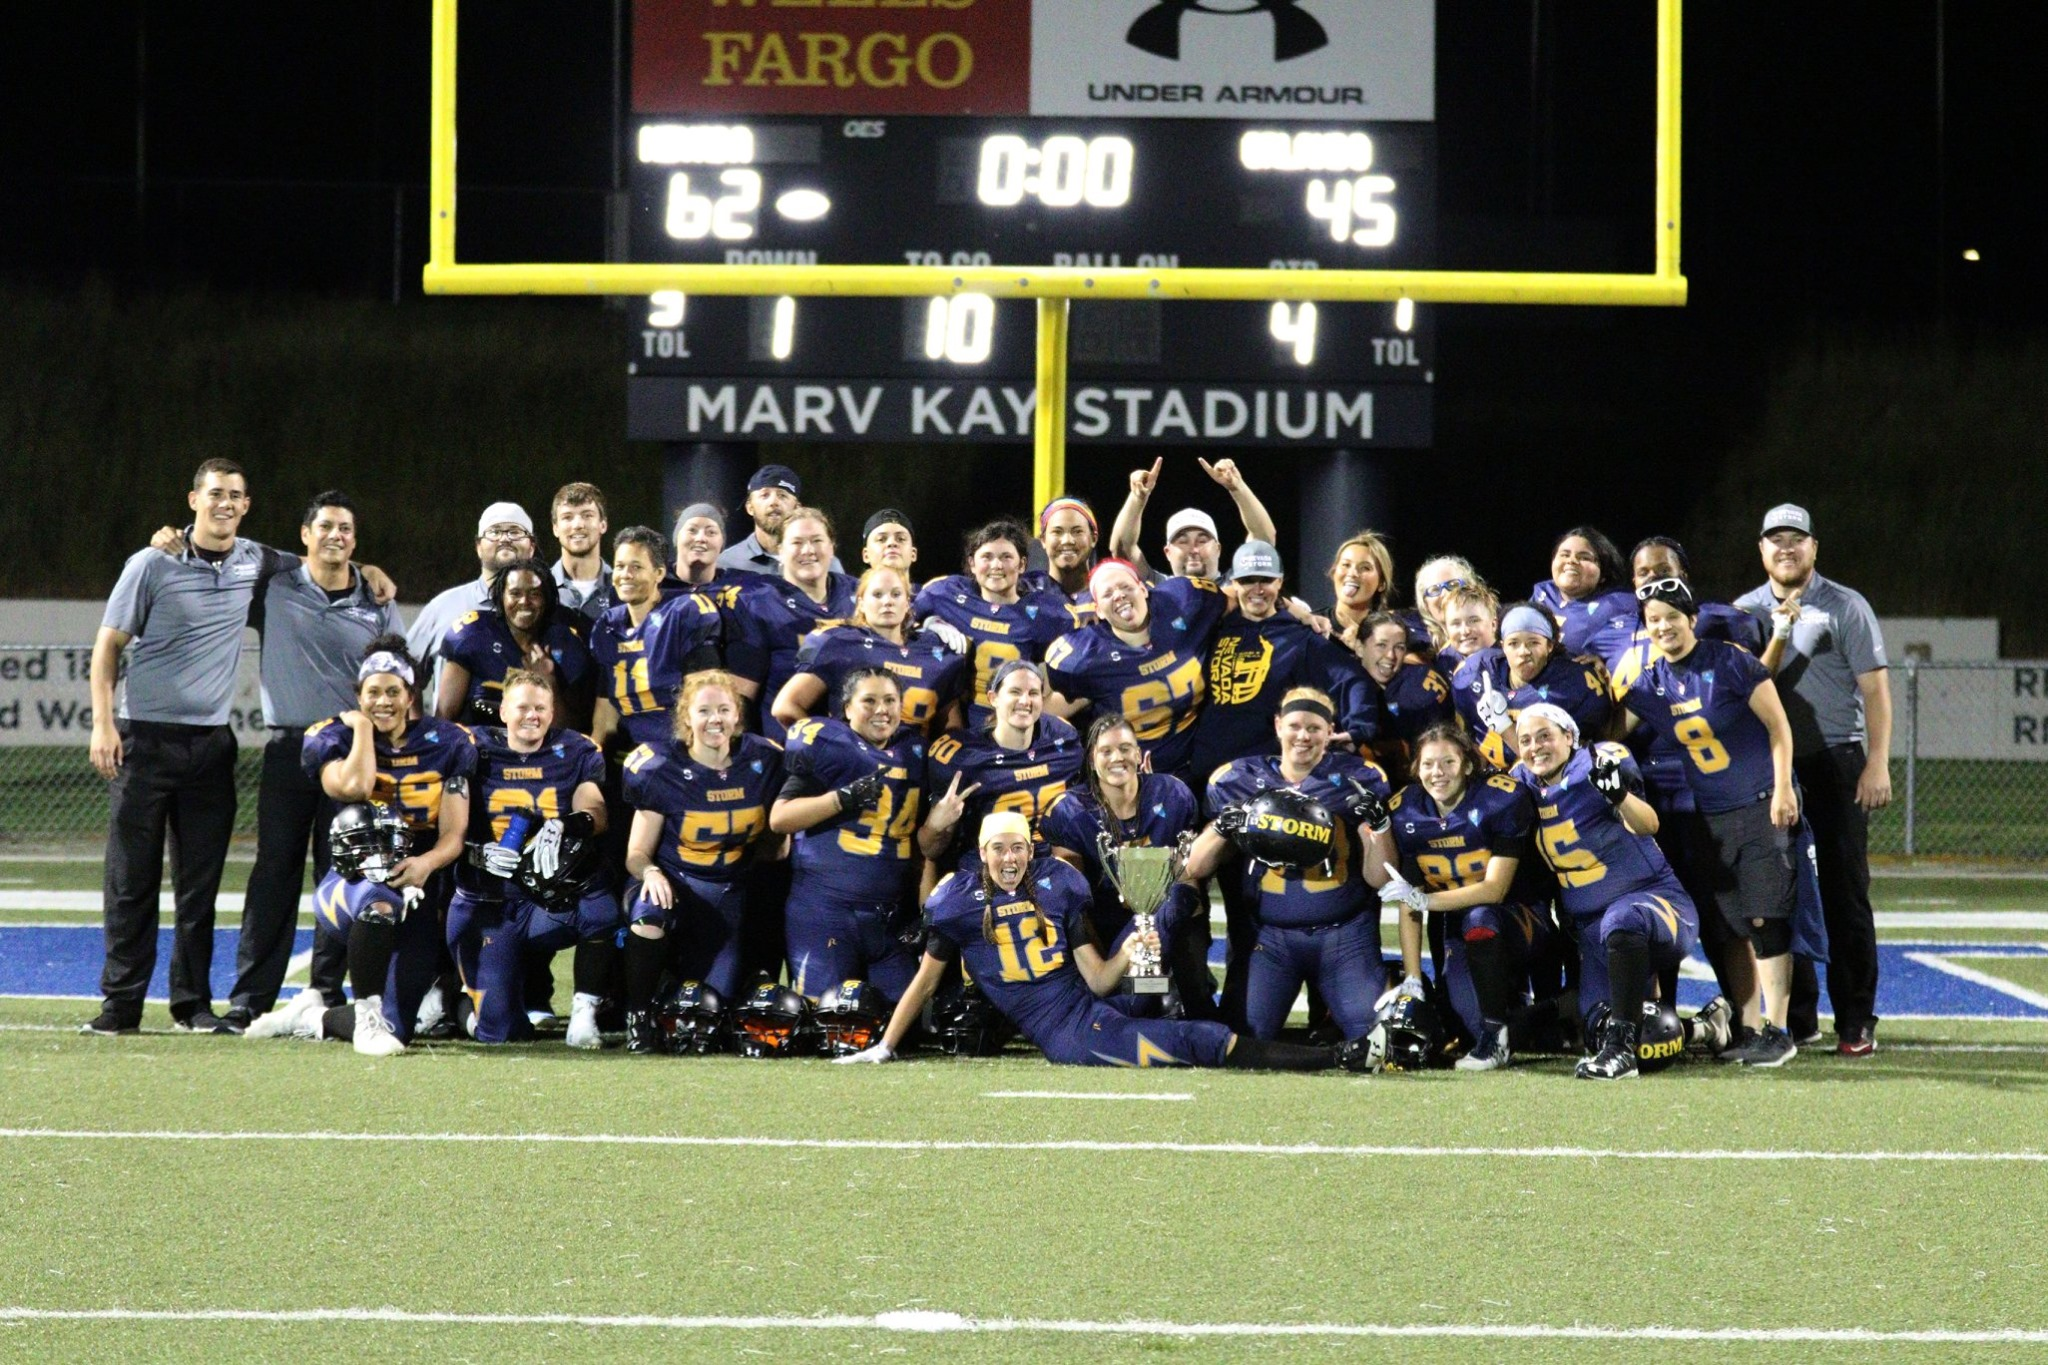 2019 WFA D3 National Champs – Women's Tackle Football